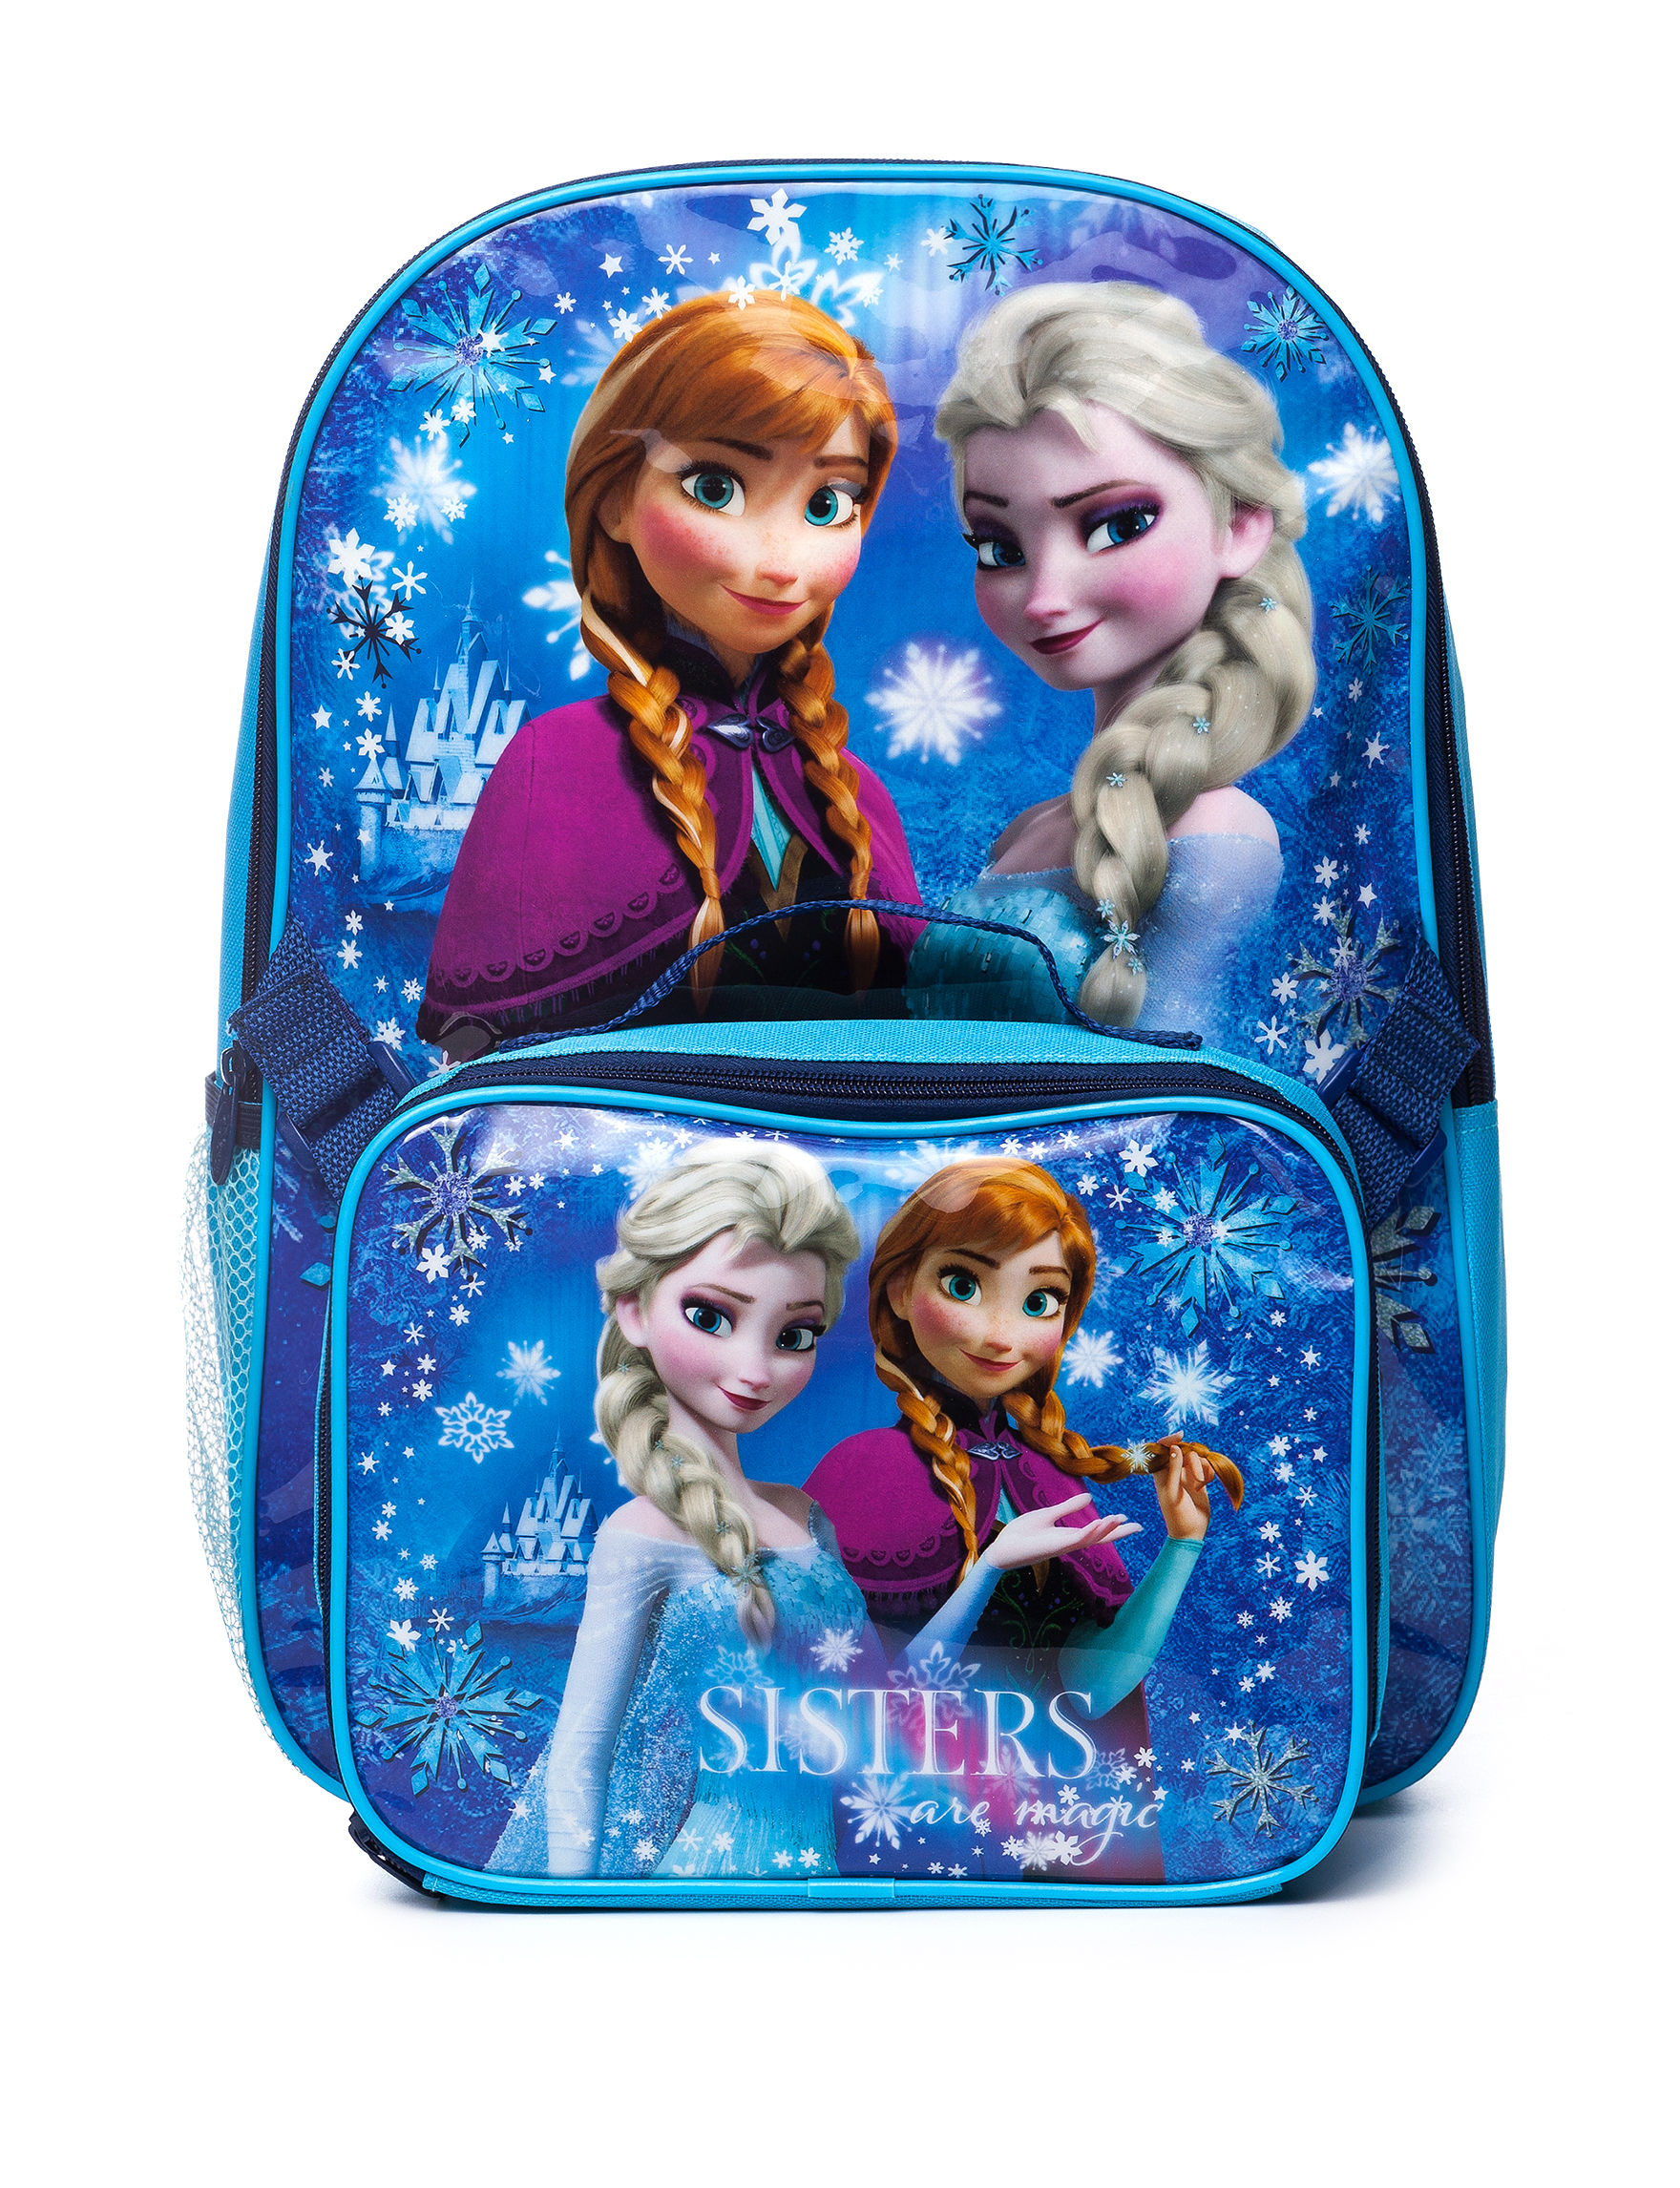 Licensed Blue Lunch Boxes & Bags